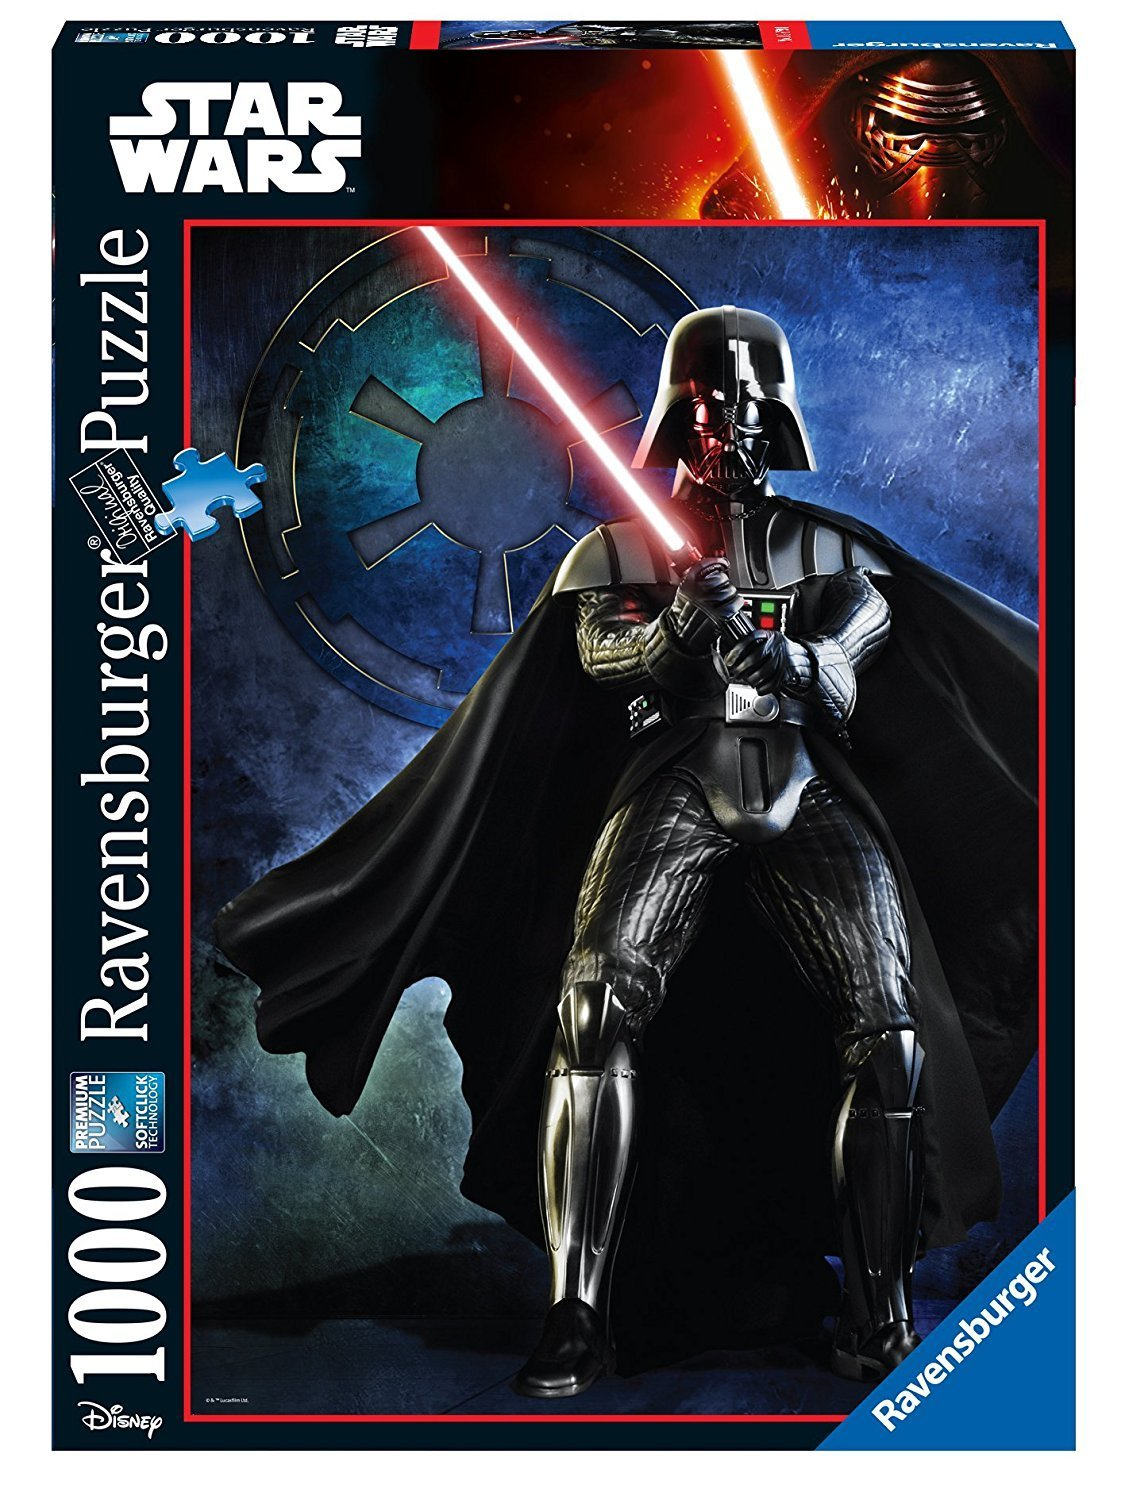 puzzle star wars ravensburger 19679 1000 pieces jigsaw puzzles other disney jigsaw puzzle. Black Bedroom Furniture Sets. Home Design Ideas